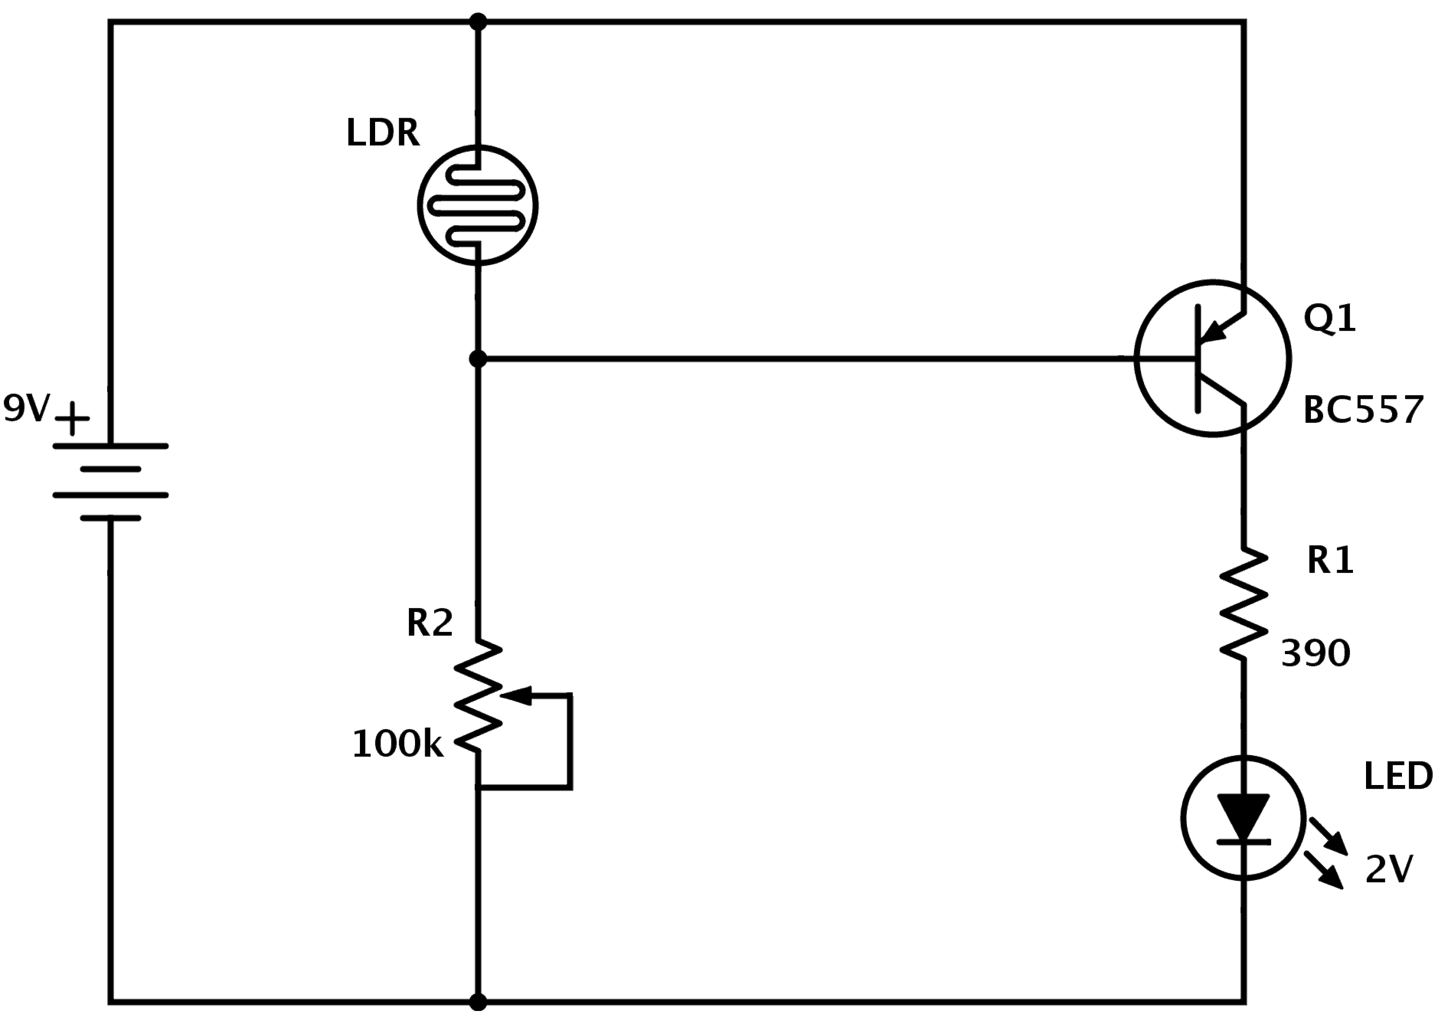 Ldr Circuit Diagram Build Electronic Circuits Diagrams Hobby Projects Electronics Parts With Pnp Transistor Dark Detector